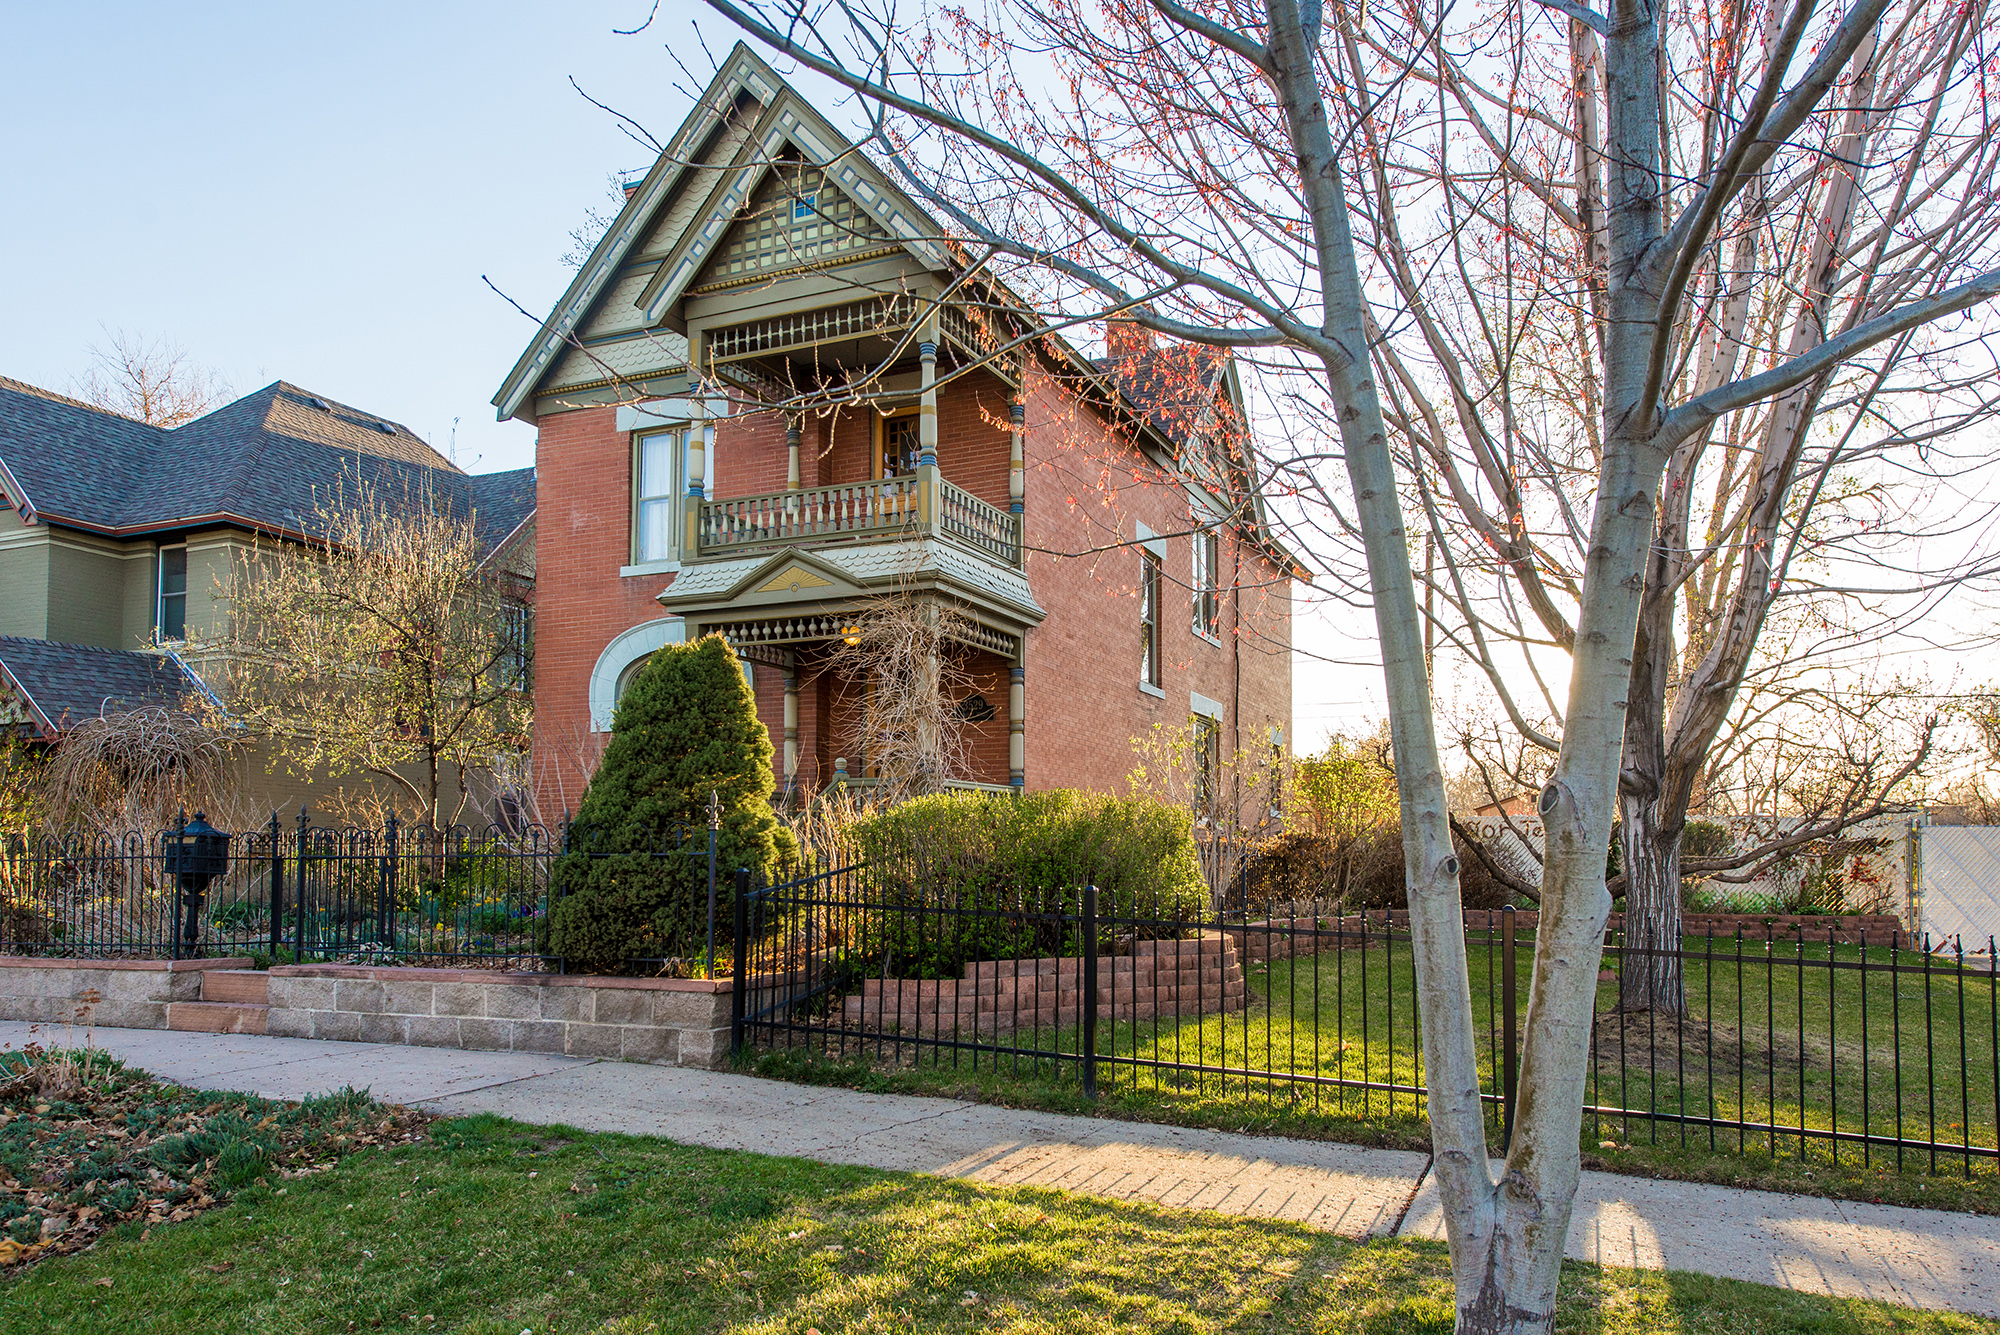 3529 Wyandot Street. Listed by LIV Sotheby's International Realty for $995,000.